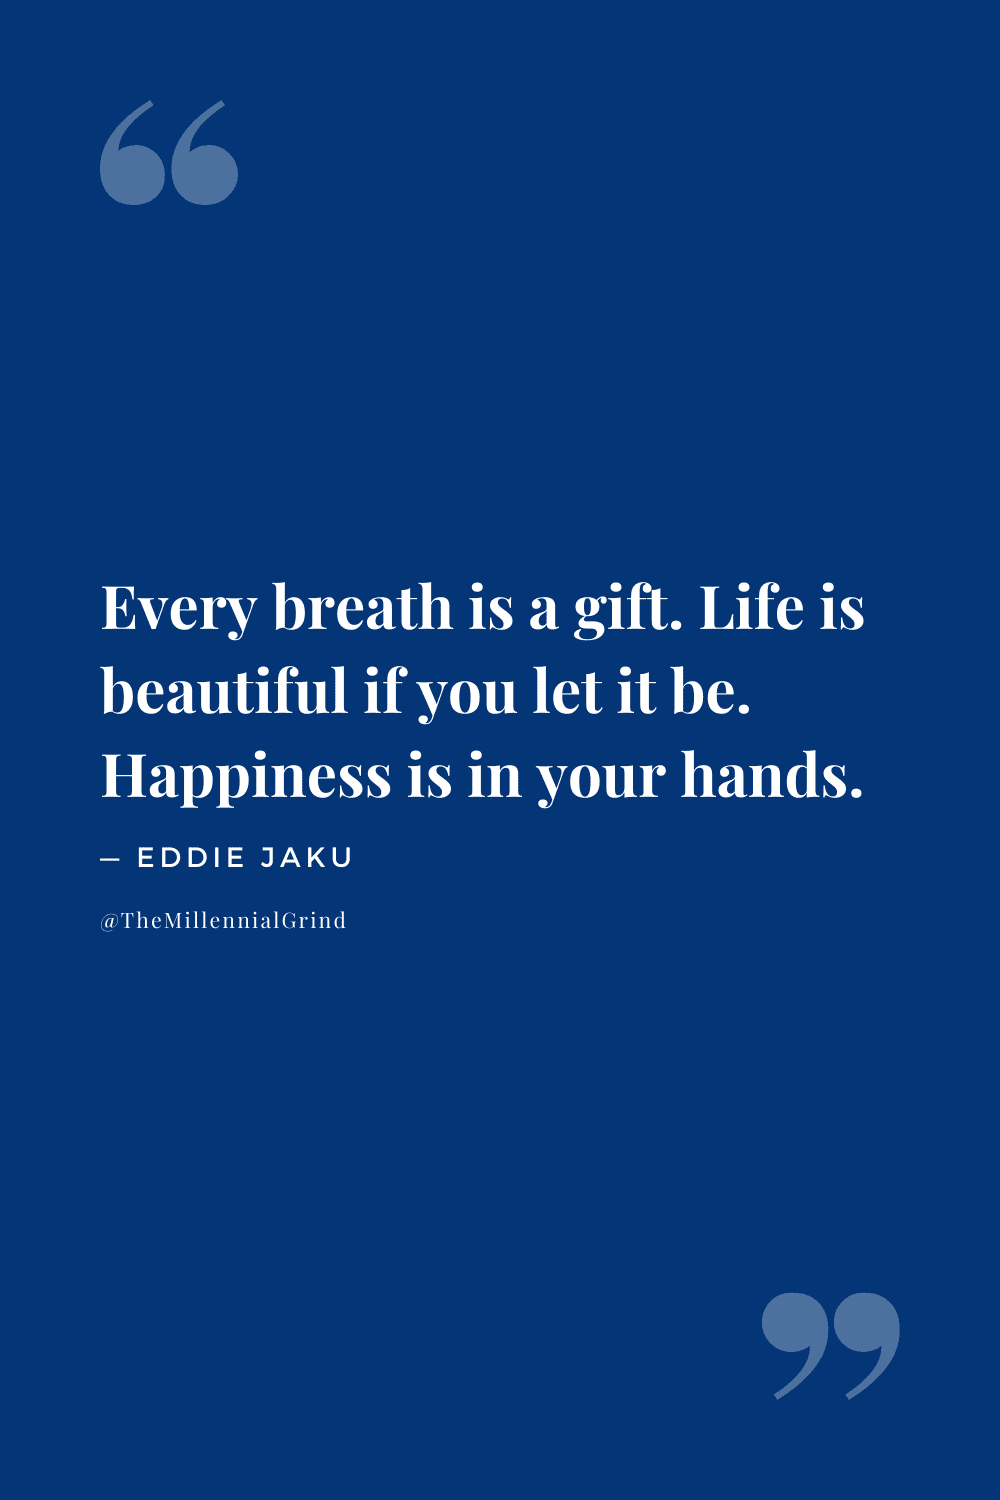 Quotes From The Happiest Man on Earth by Eddie Jaku